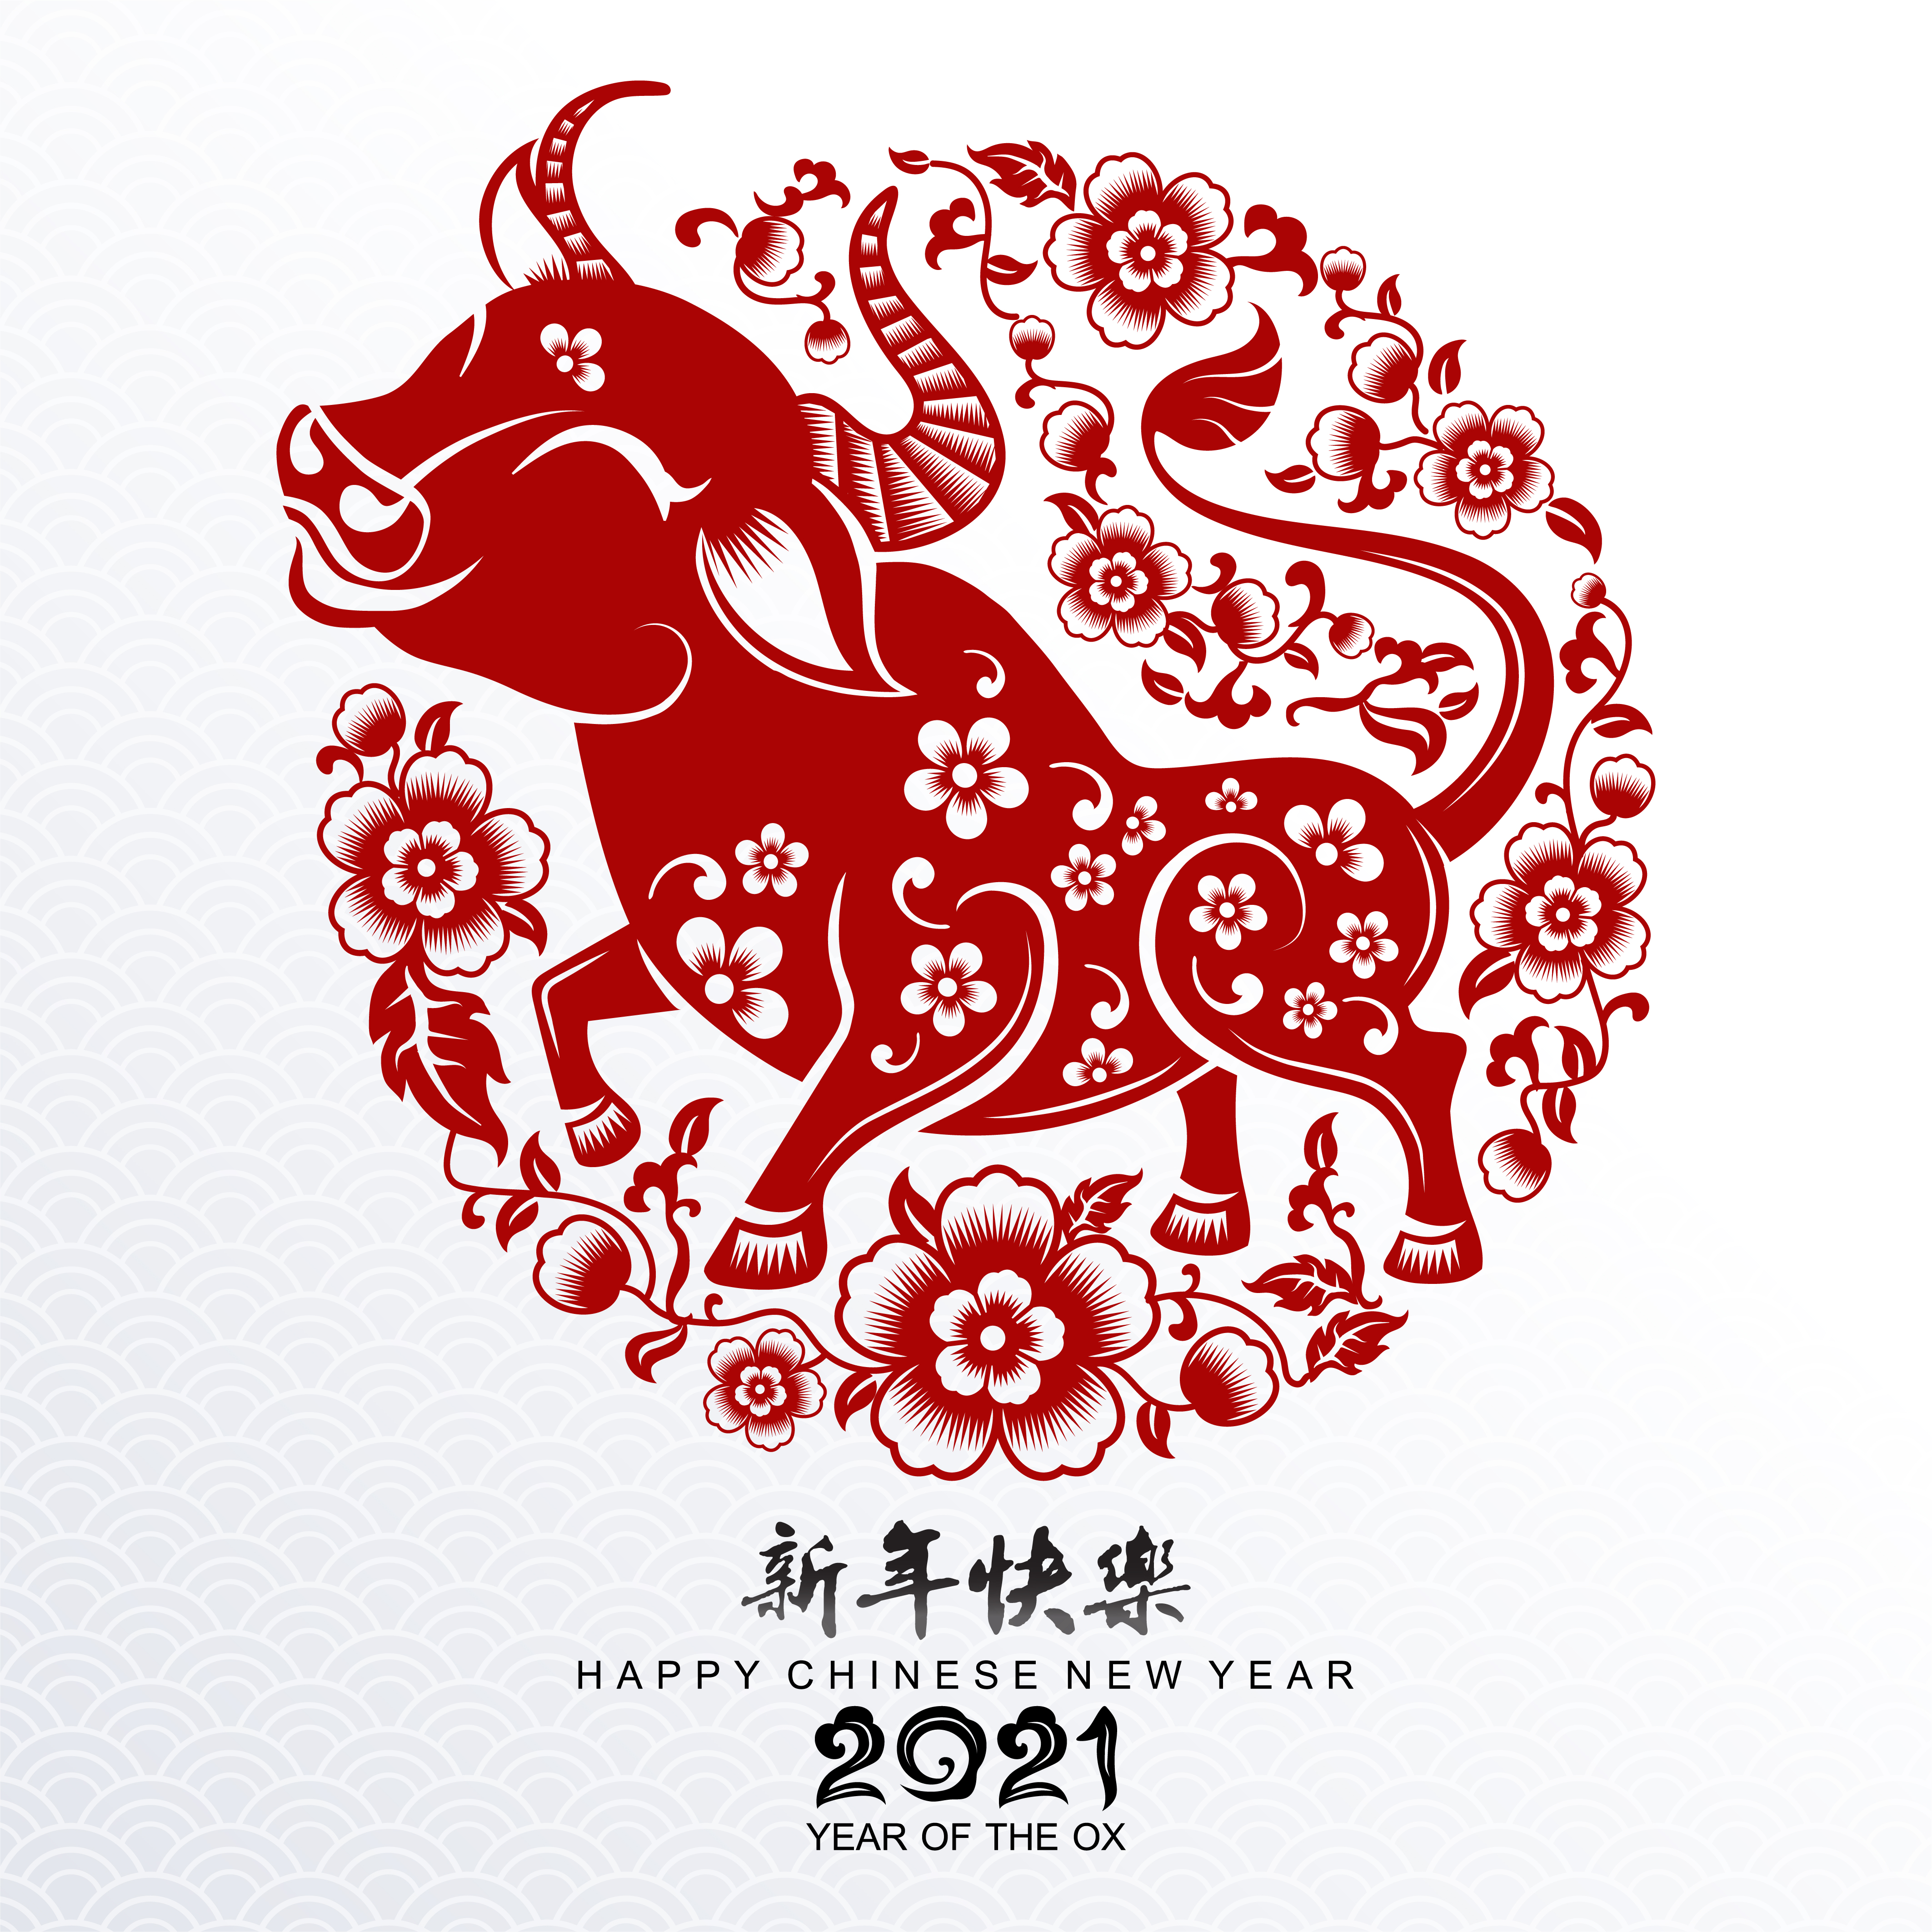 Chinese New Year 2021 Floral Frame With Ox Download Free Vectors Clipart Graphics Vector Art